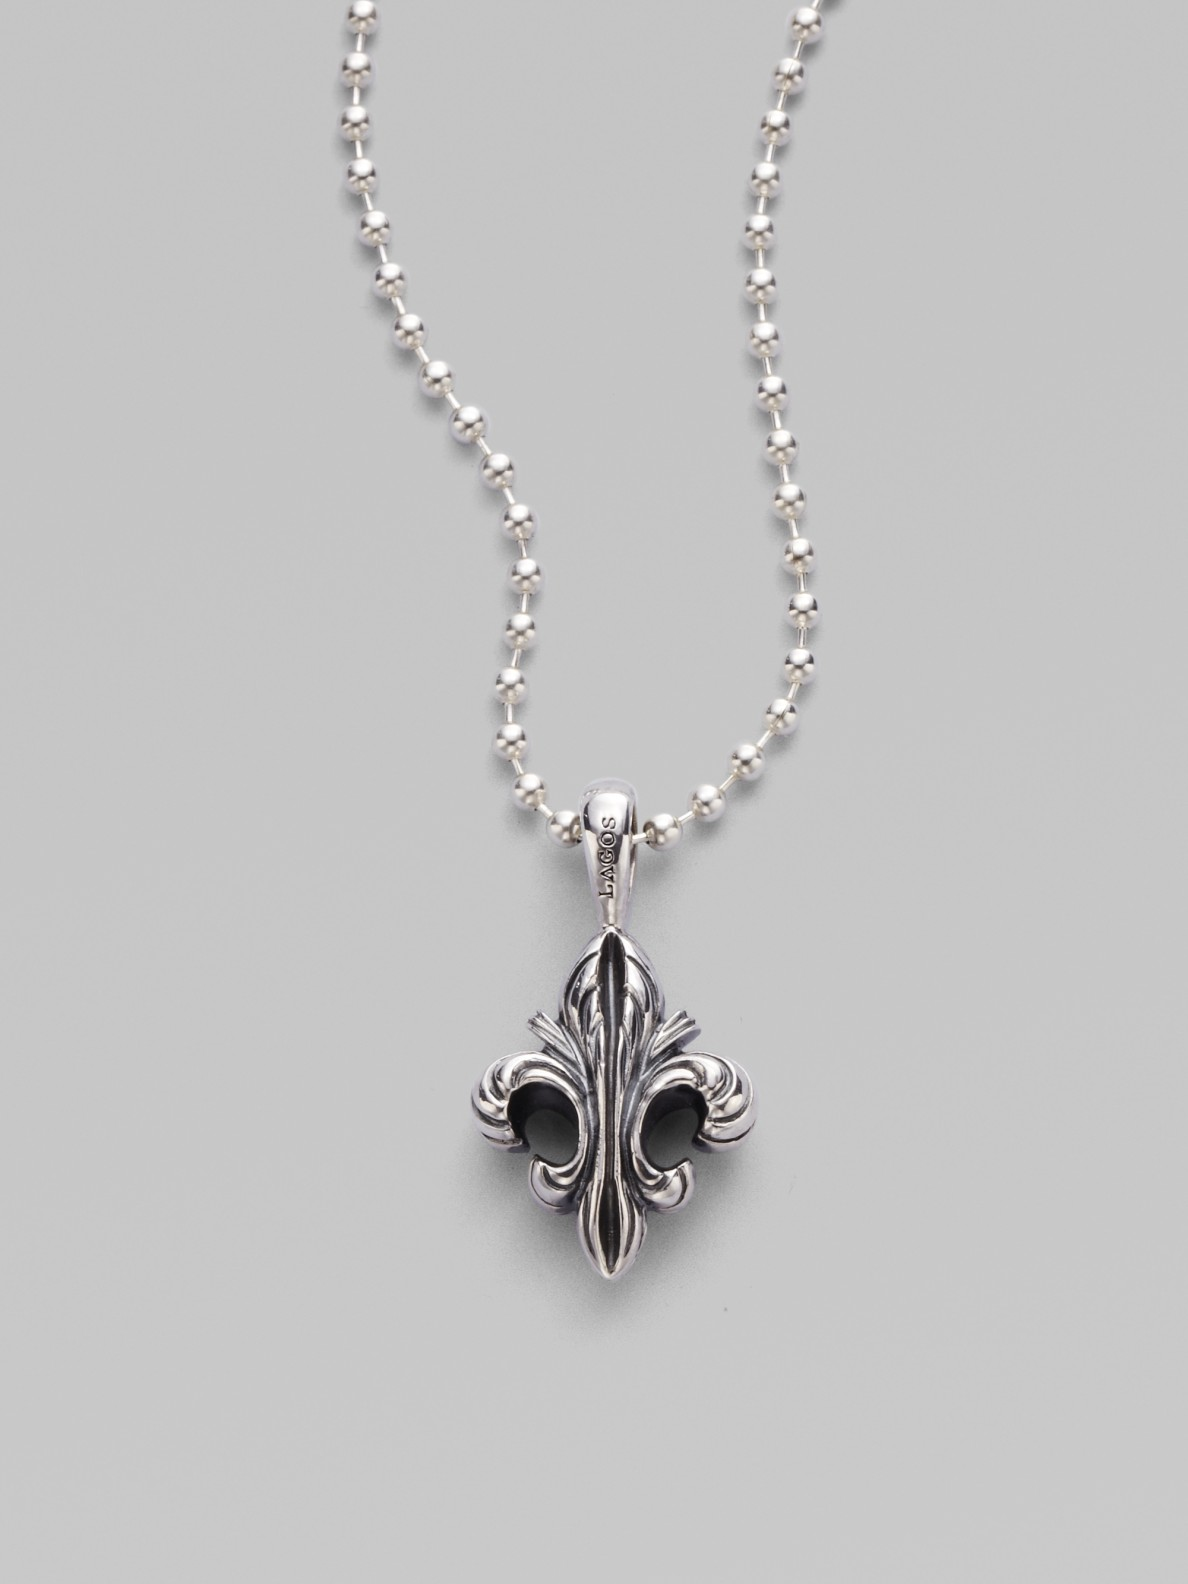 Lyst lagos sterling silver fleur de lis pendant necklace in metallic gallery mozeypictures Images